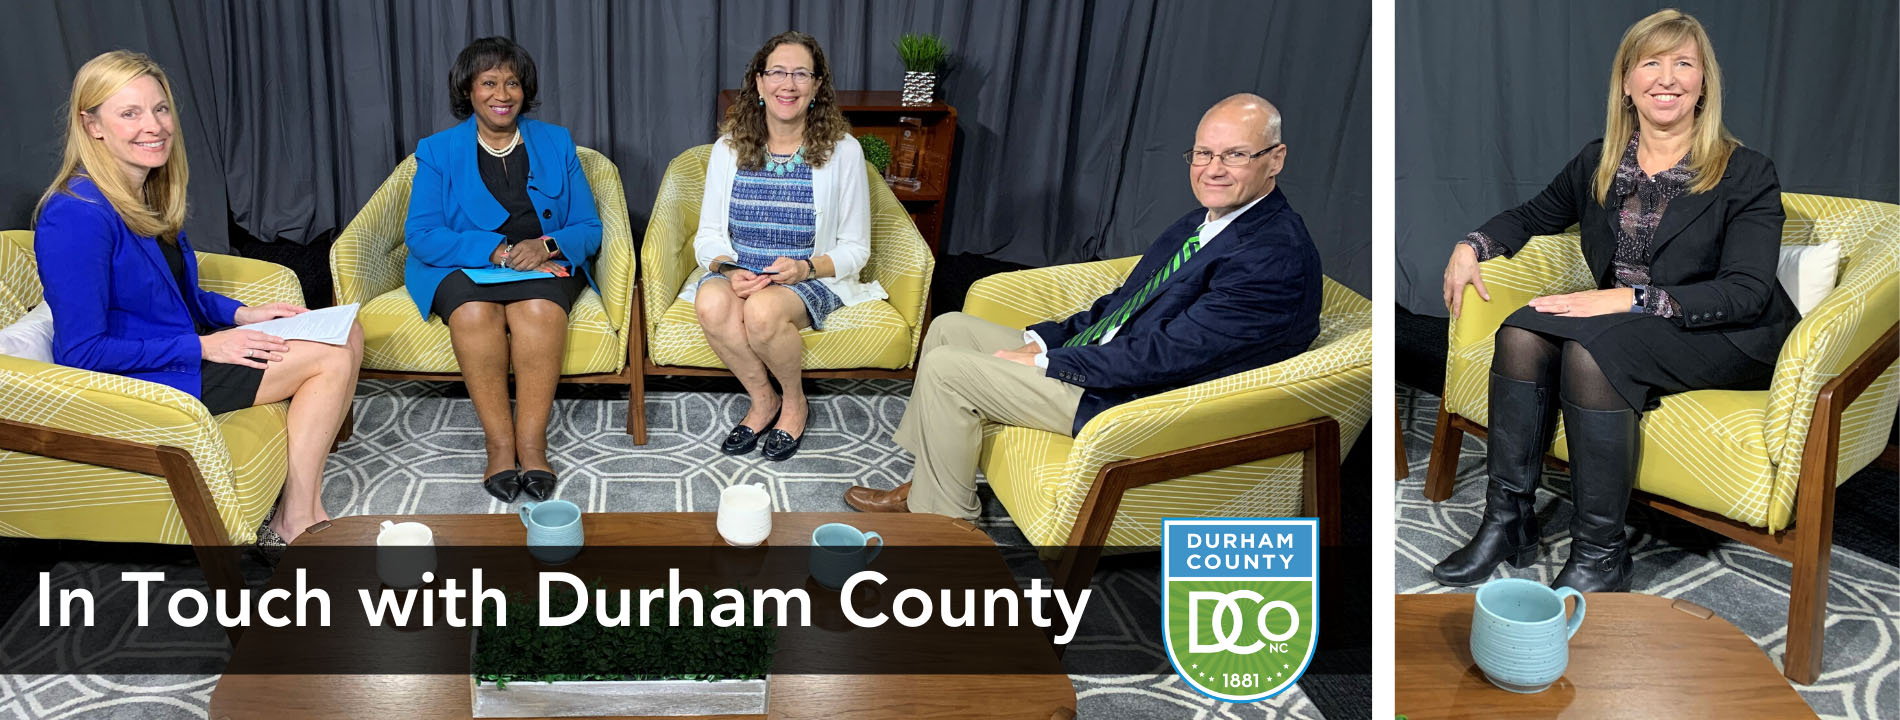 In Touch with Durham County November 19. Guests and hosts sitting at table.